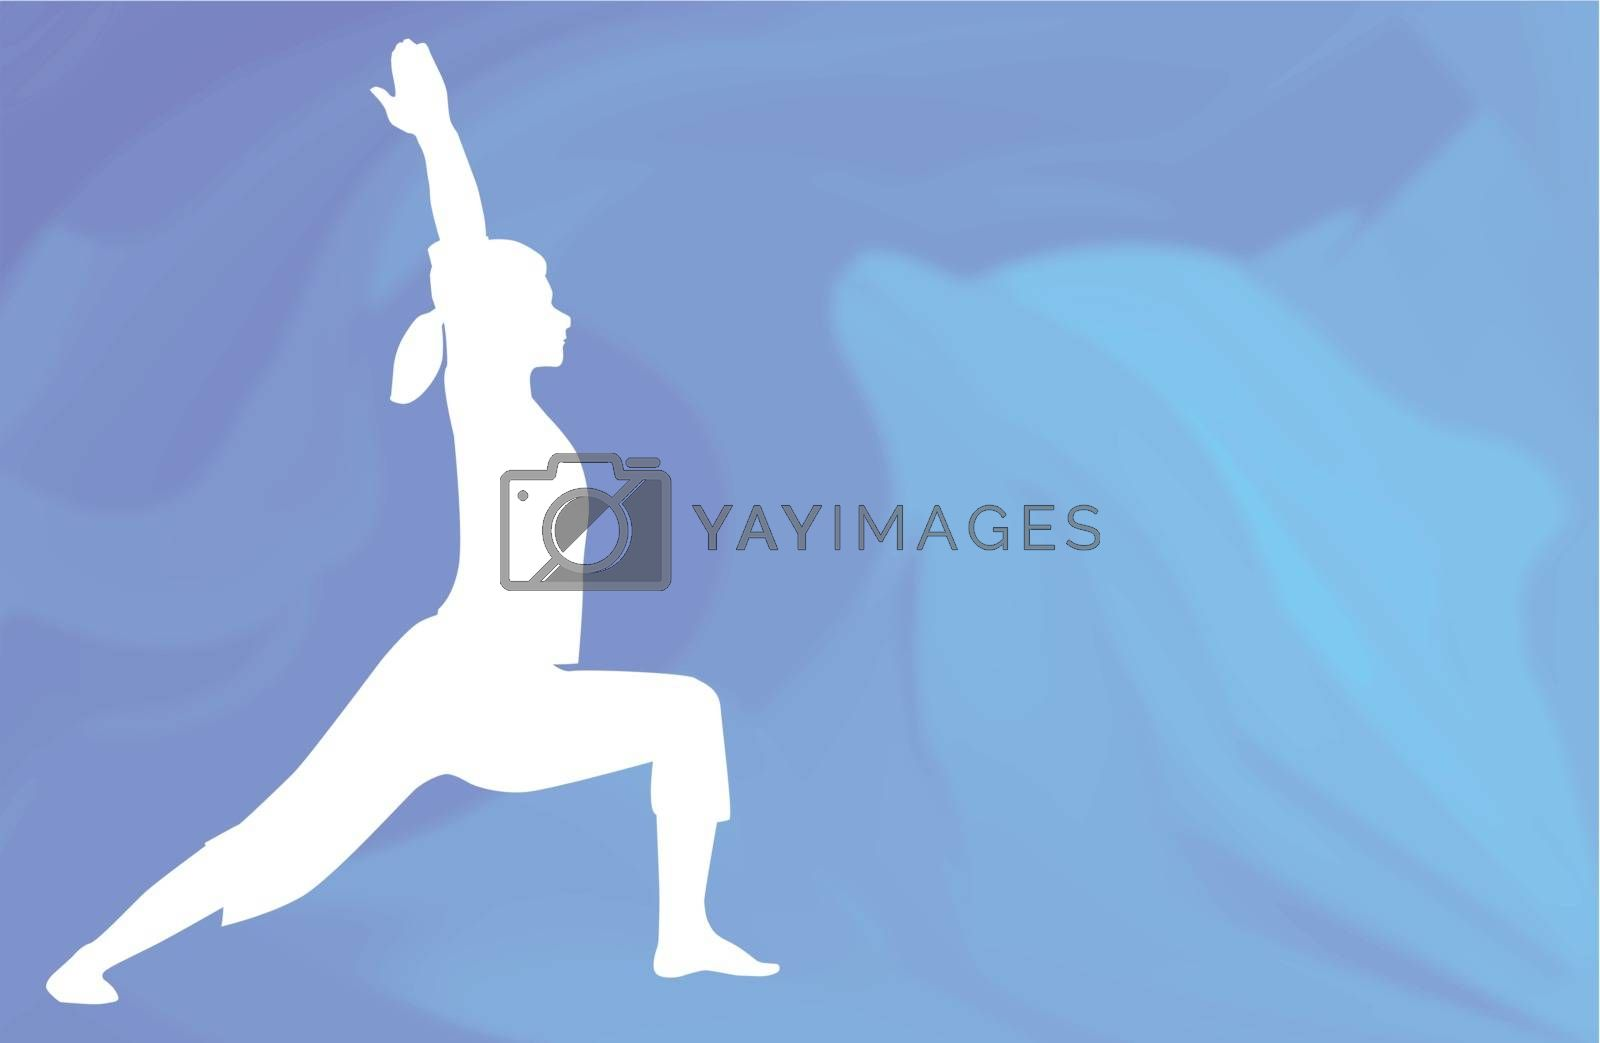 An asana being posed against a dolphin ocean background